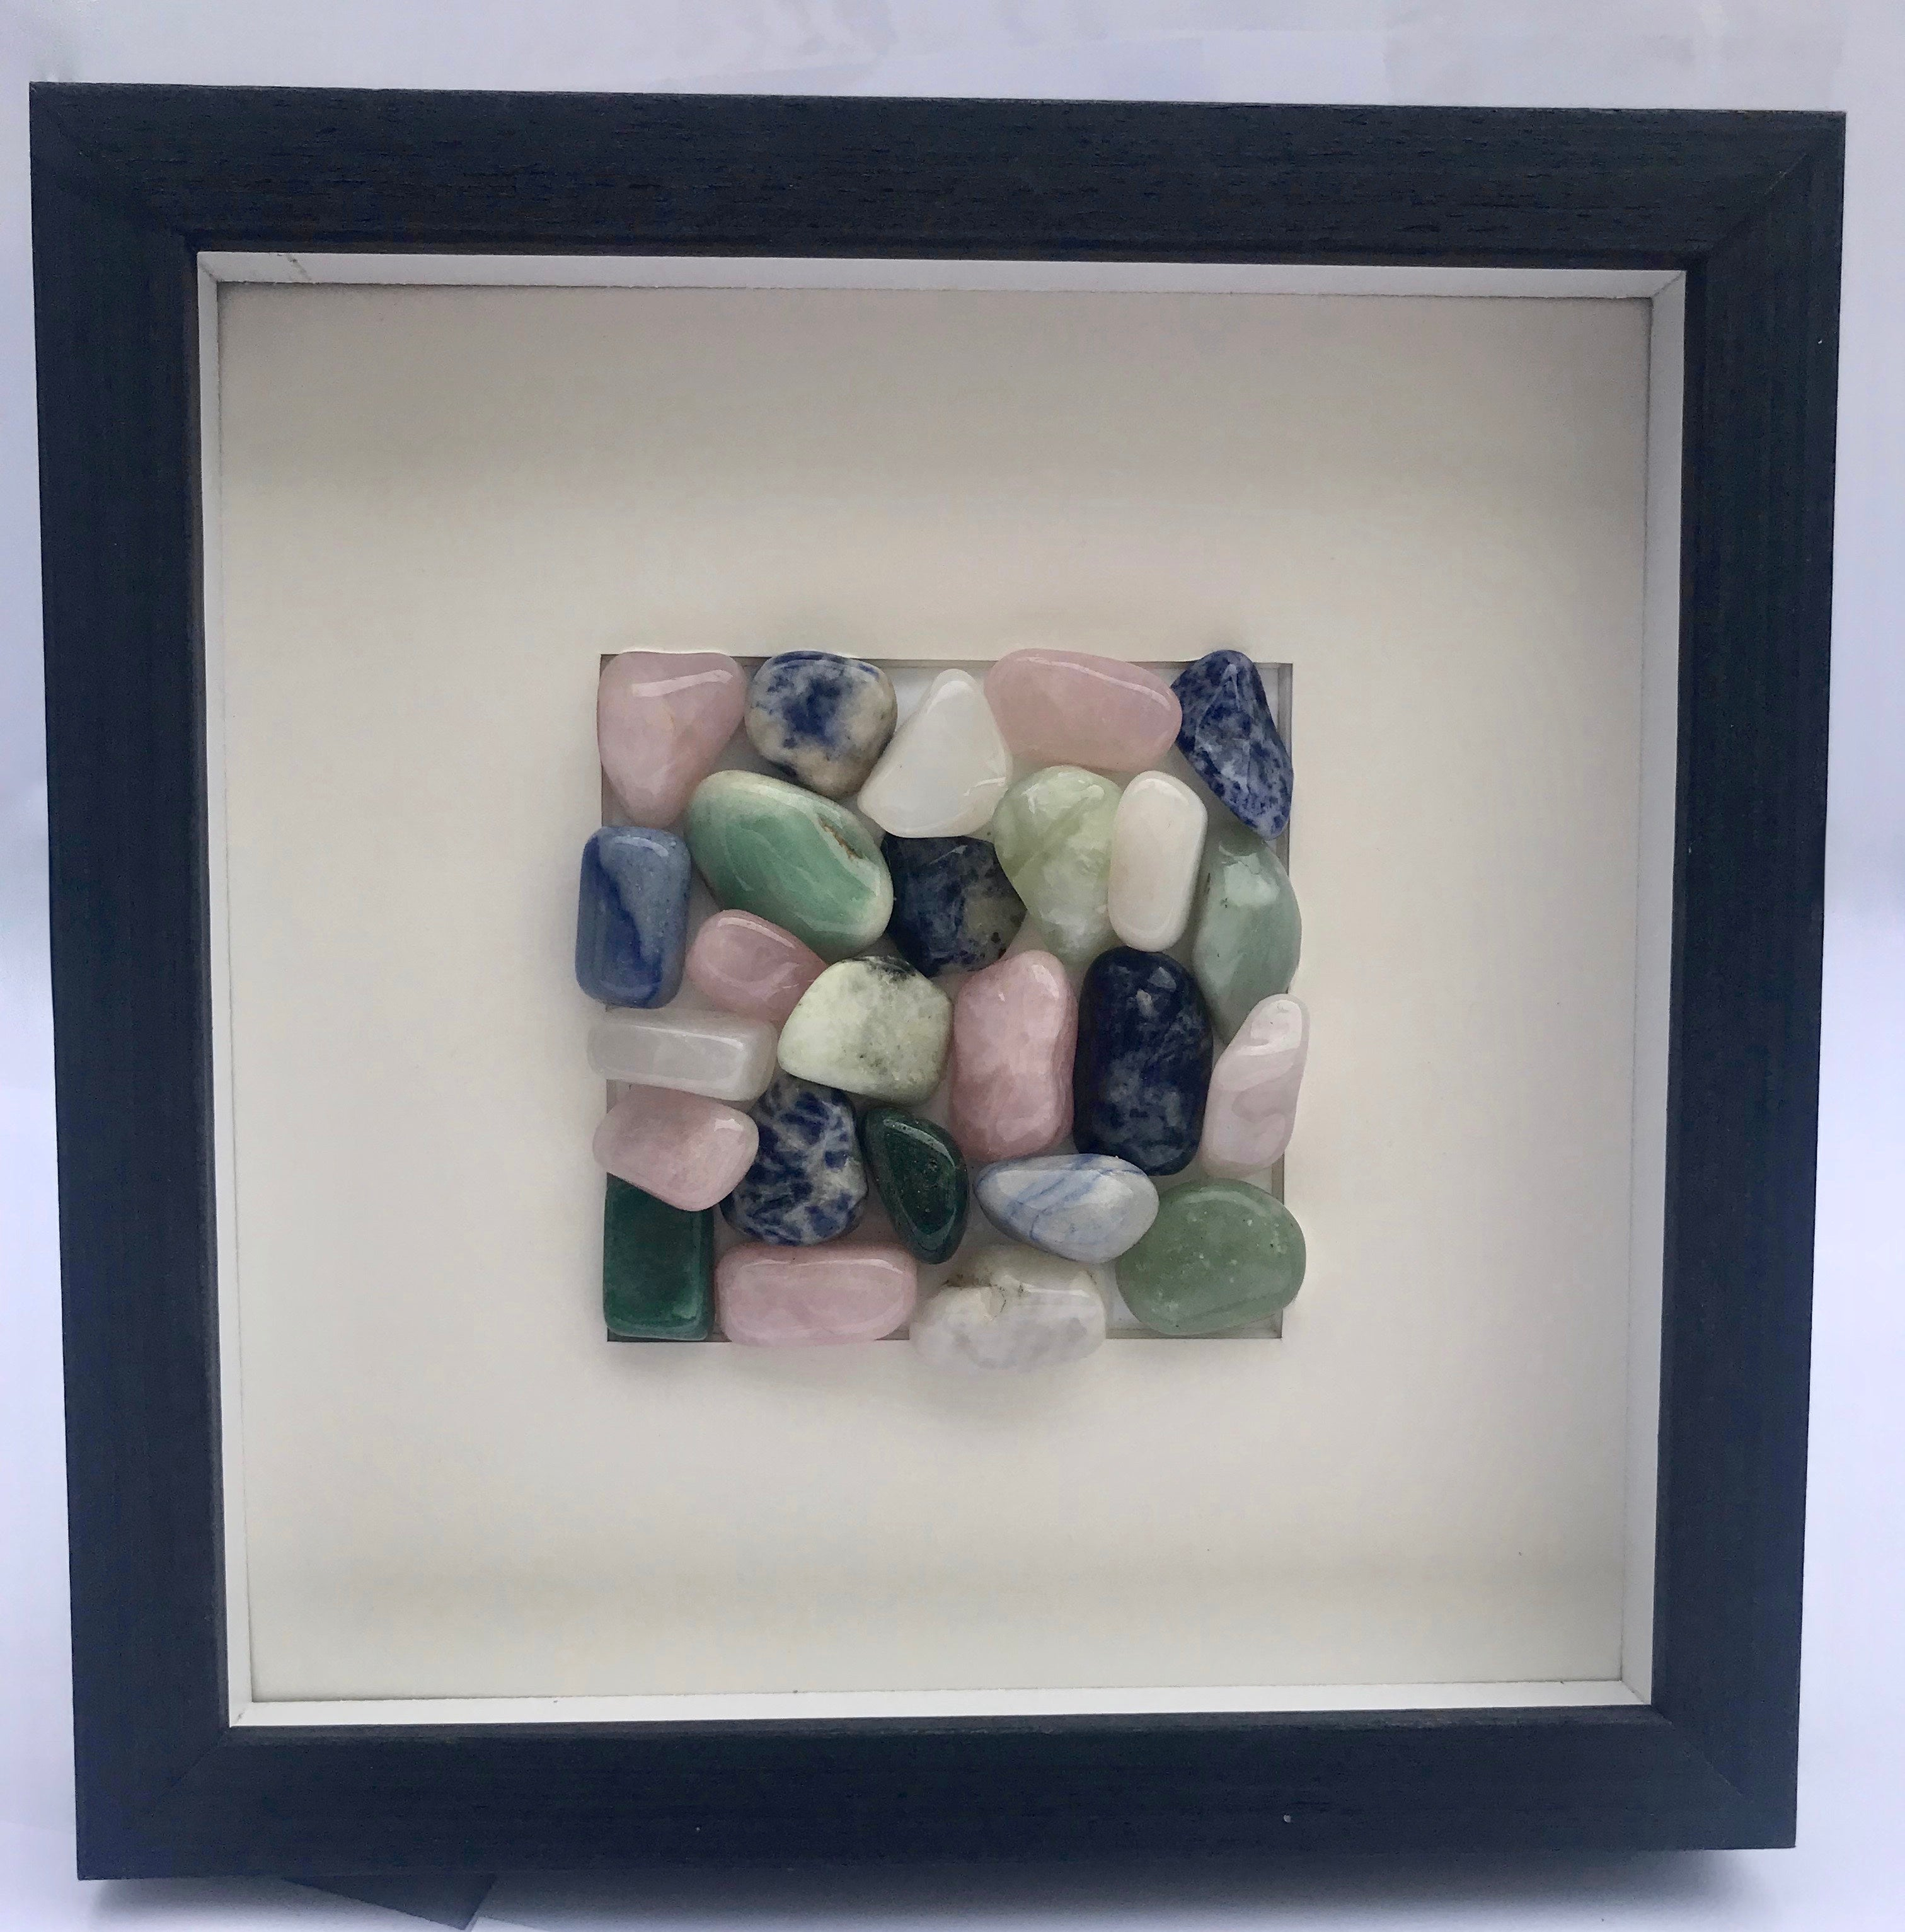 Brazilian Polished Agate Wall Art In Black Wood Shadow Box Frame 8 75 X 8 75